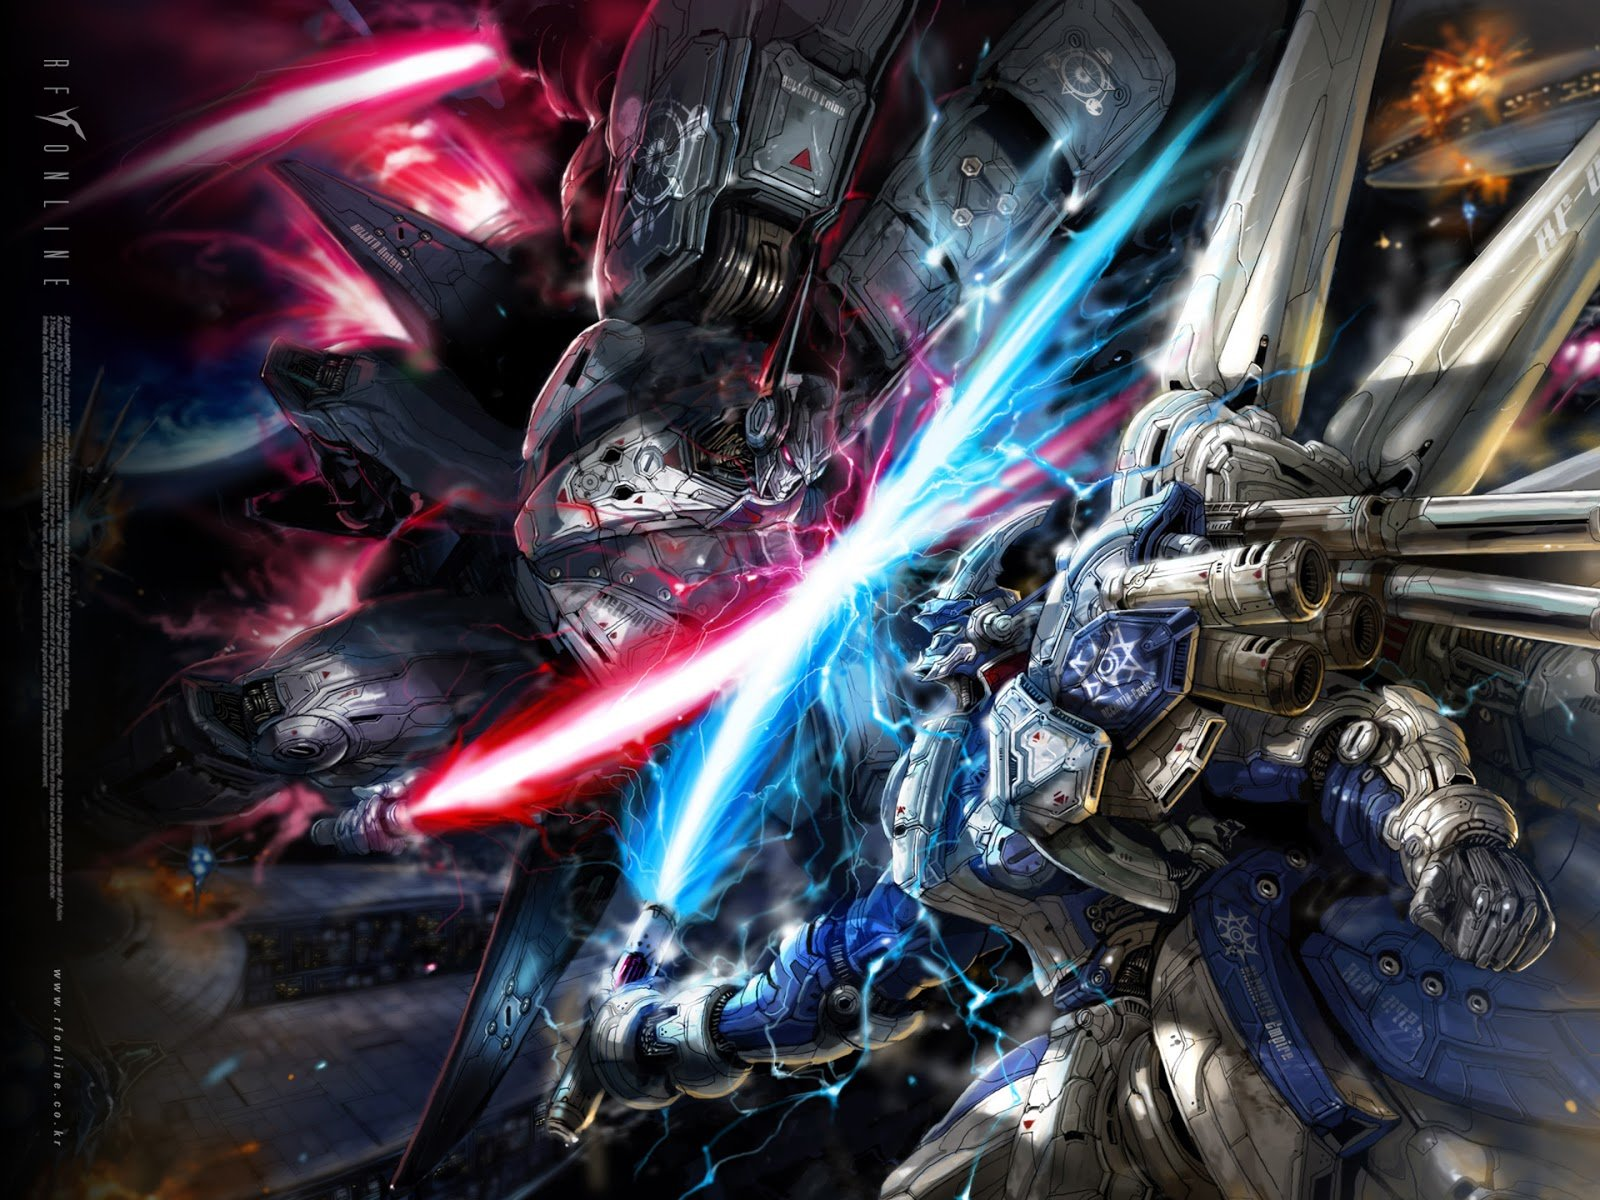 50 anime fighting wallpaper on wallpapersafari - Anime hd wallpapers for pc ...